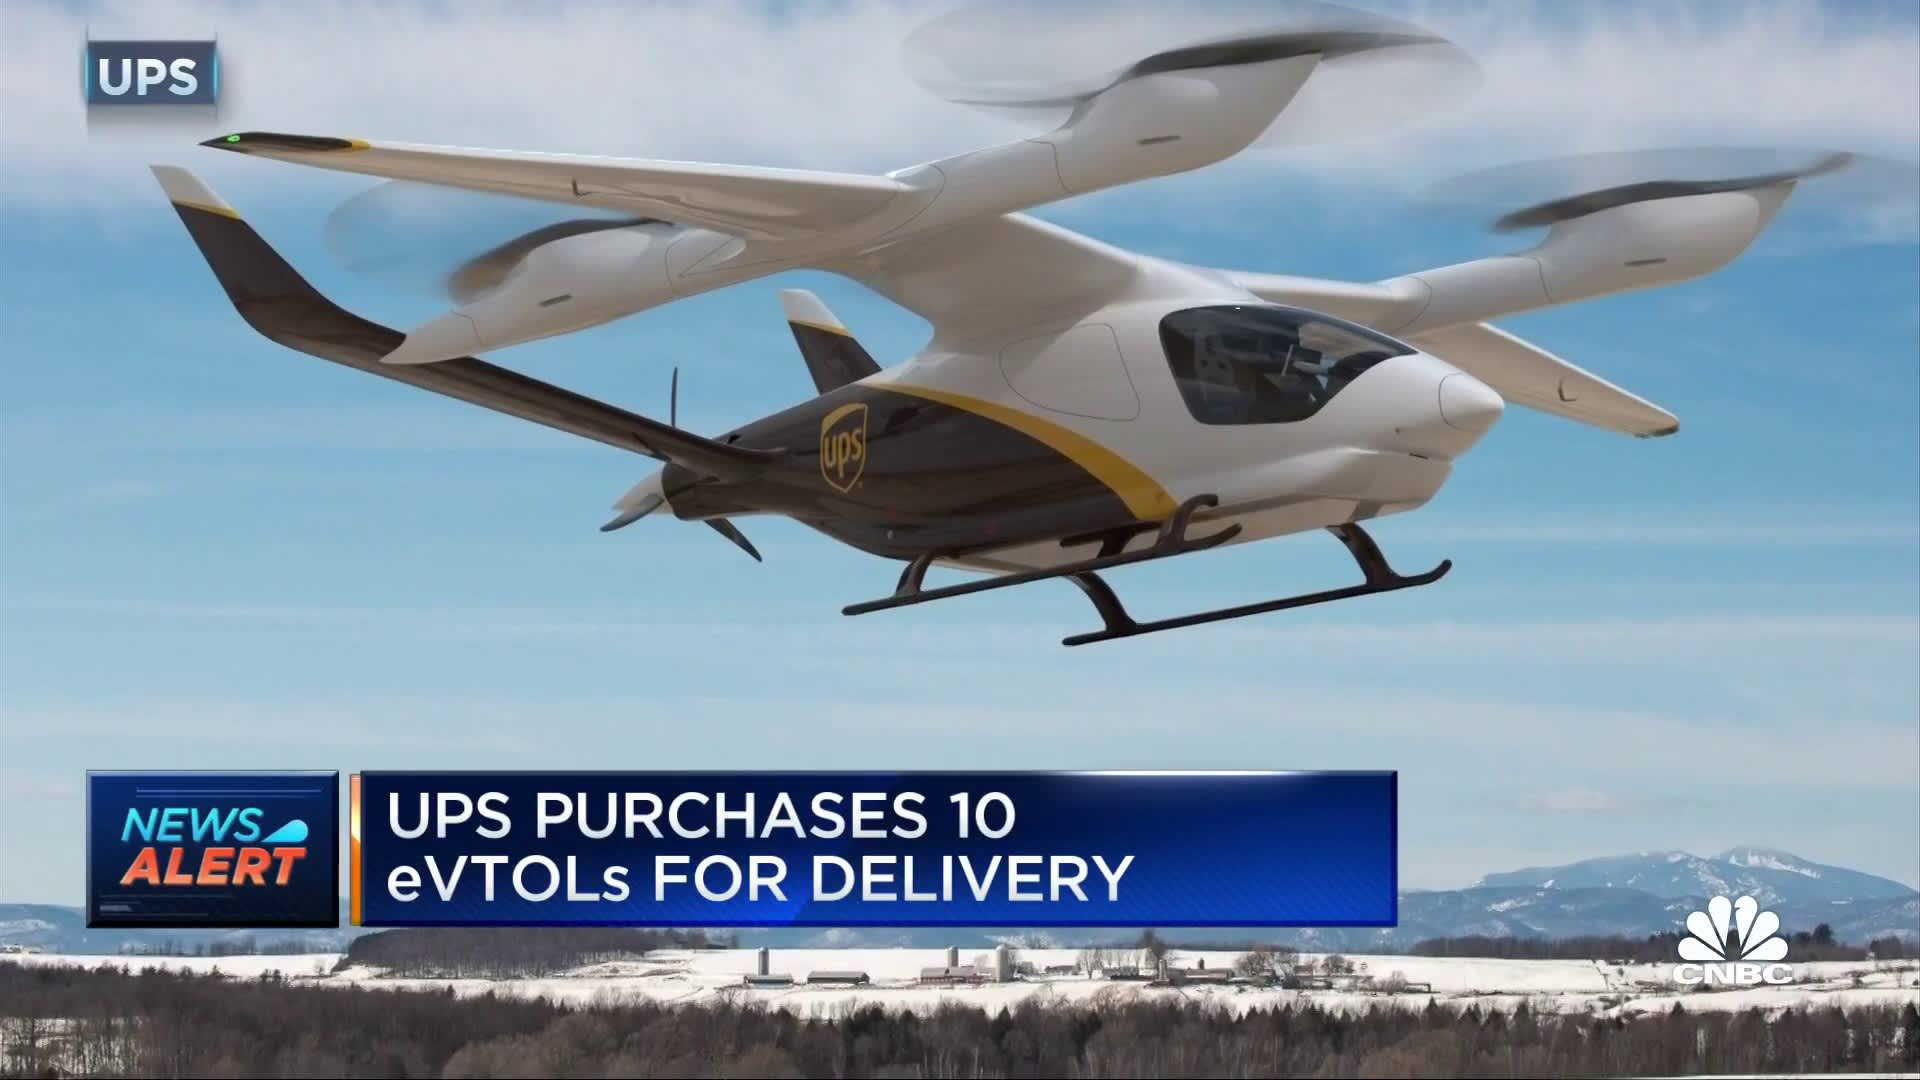 UPS buys Electric Vertical Aircraft to speed up Package Delivery